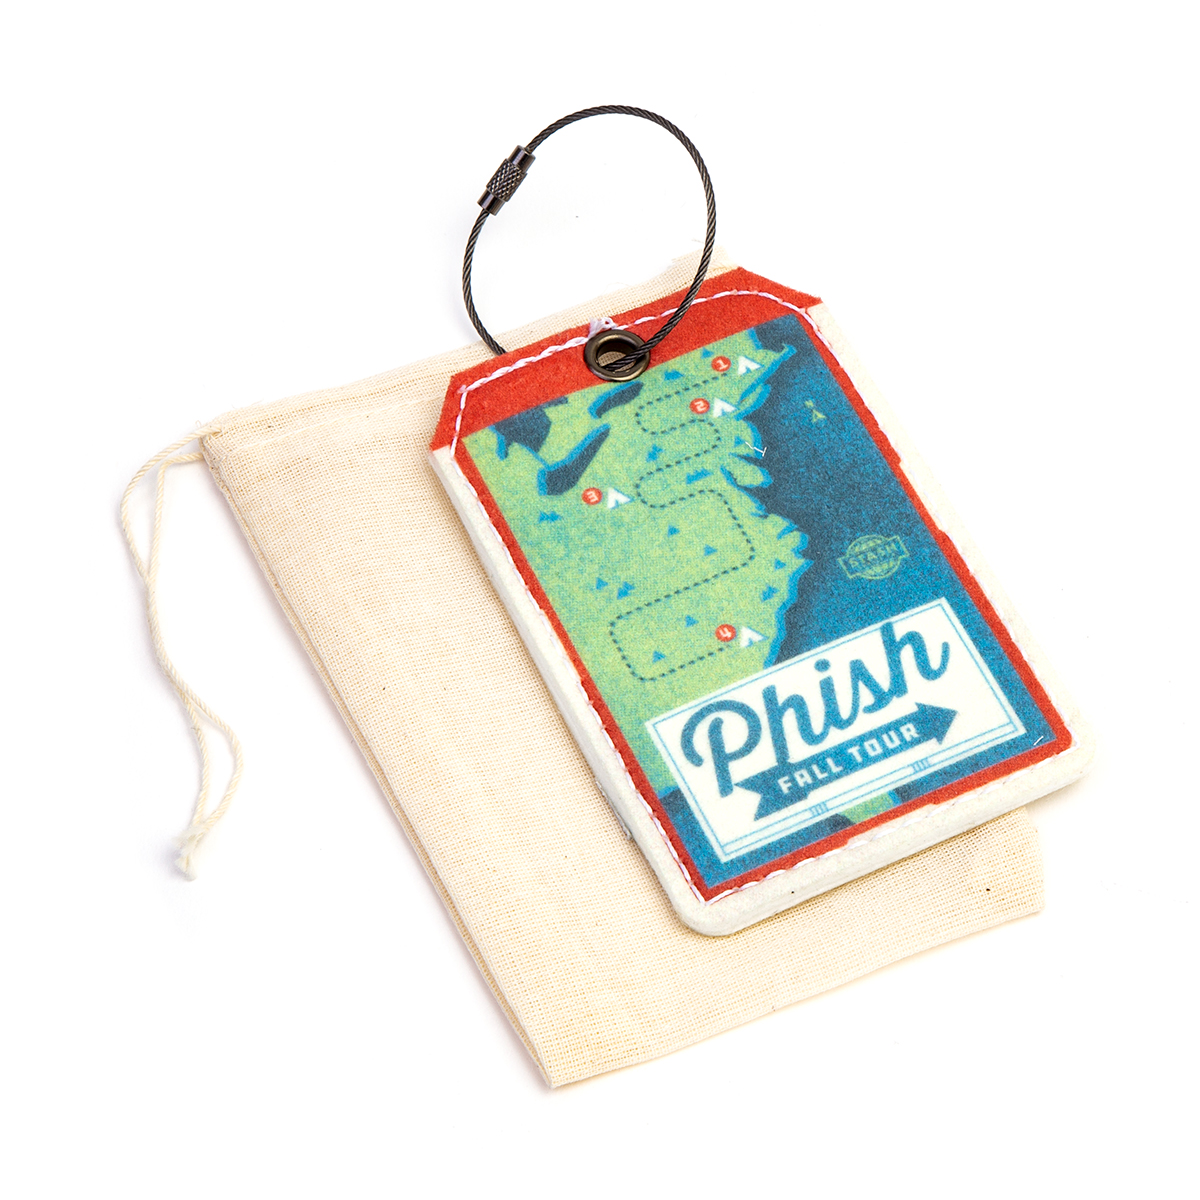 Fall Tour 2019 Luggage Tag